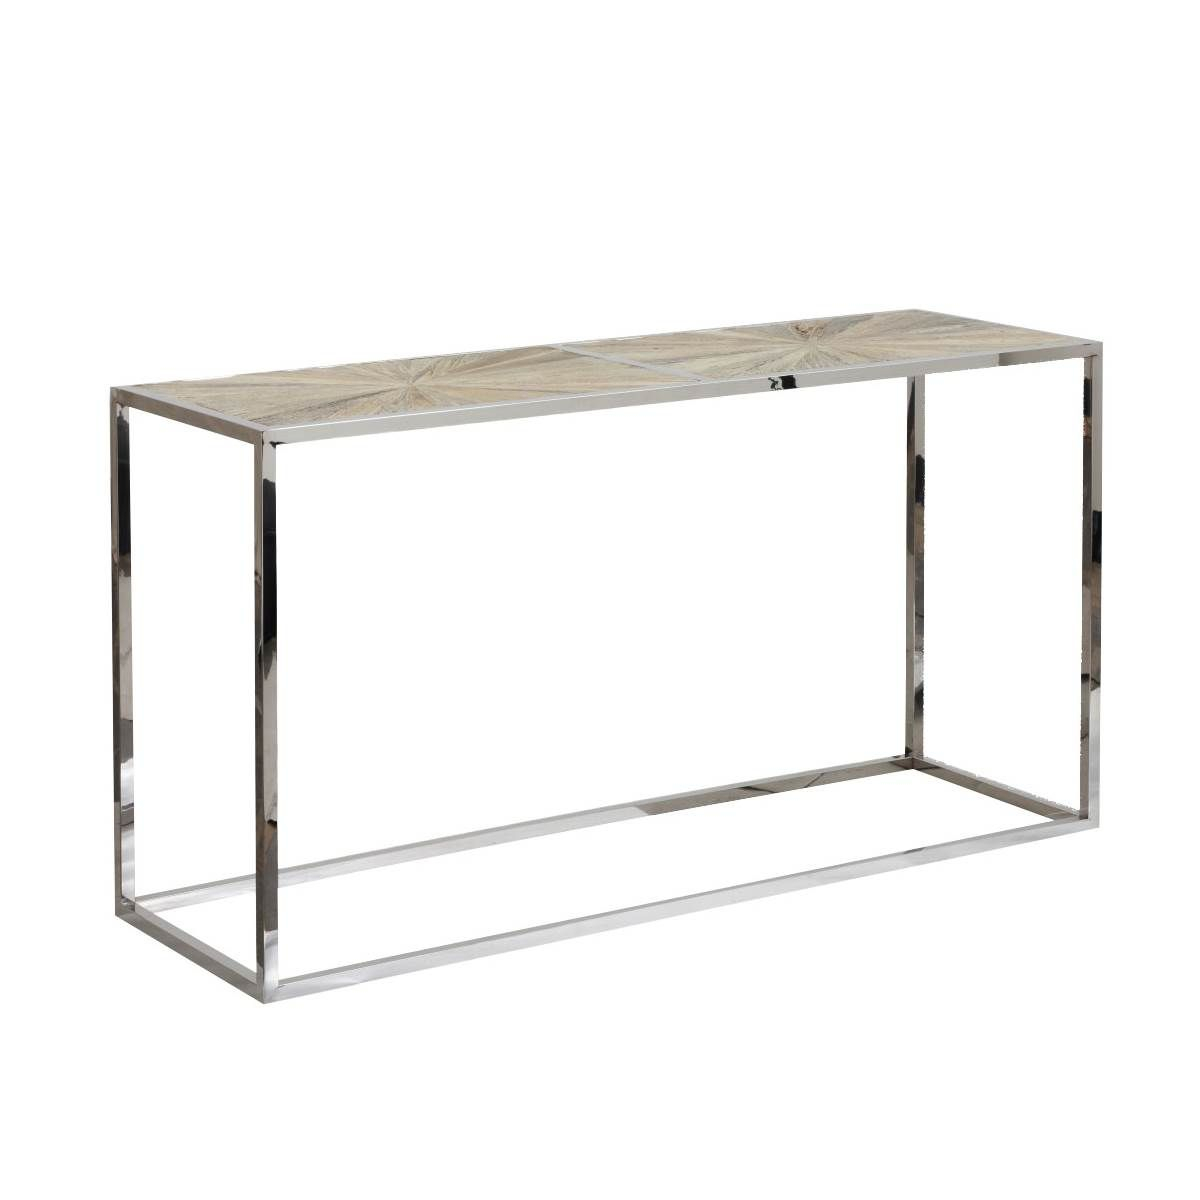 Parquet Console Table | Marshall | Pinterest For Parsons Clear Glass Top & Stainless Steel Base 48x16 Console Tables (View 7 of 30)